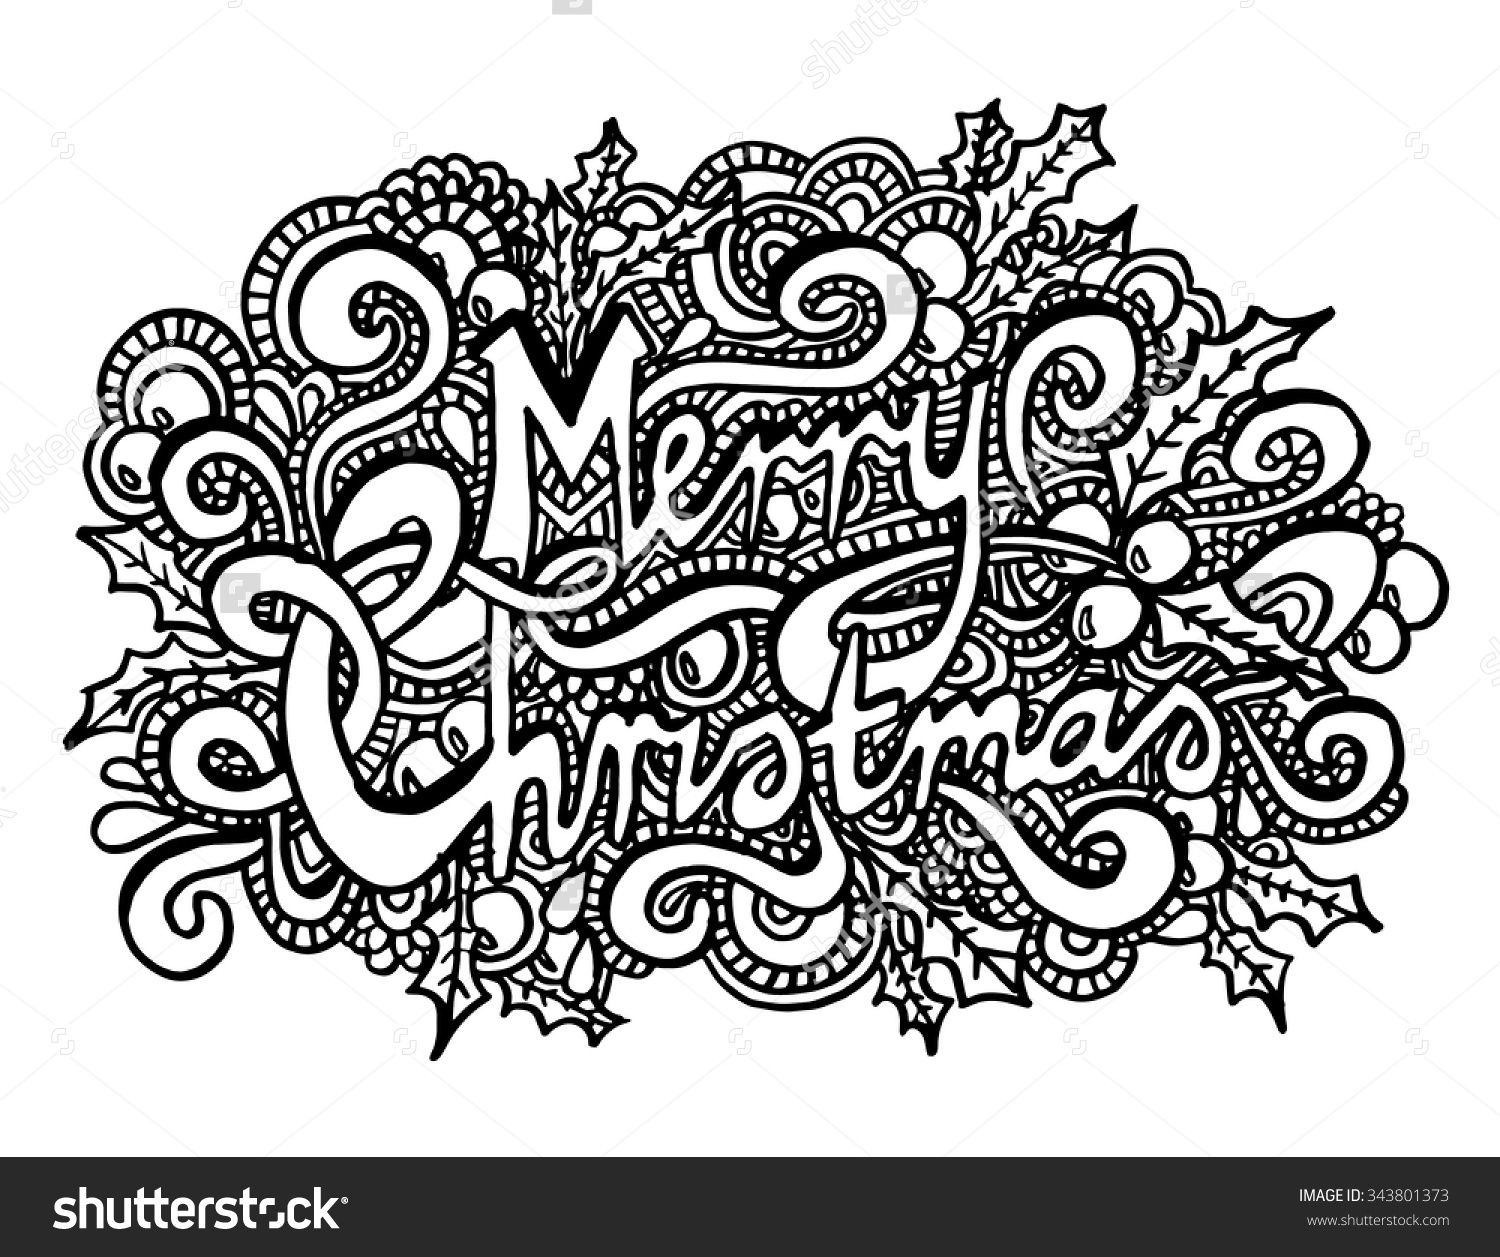 merry christmas coloring page zentangle colouring